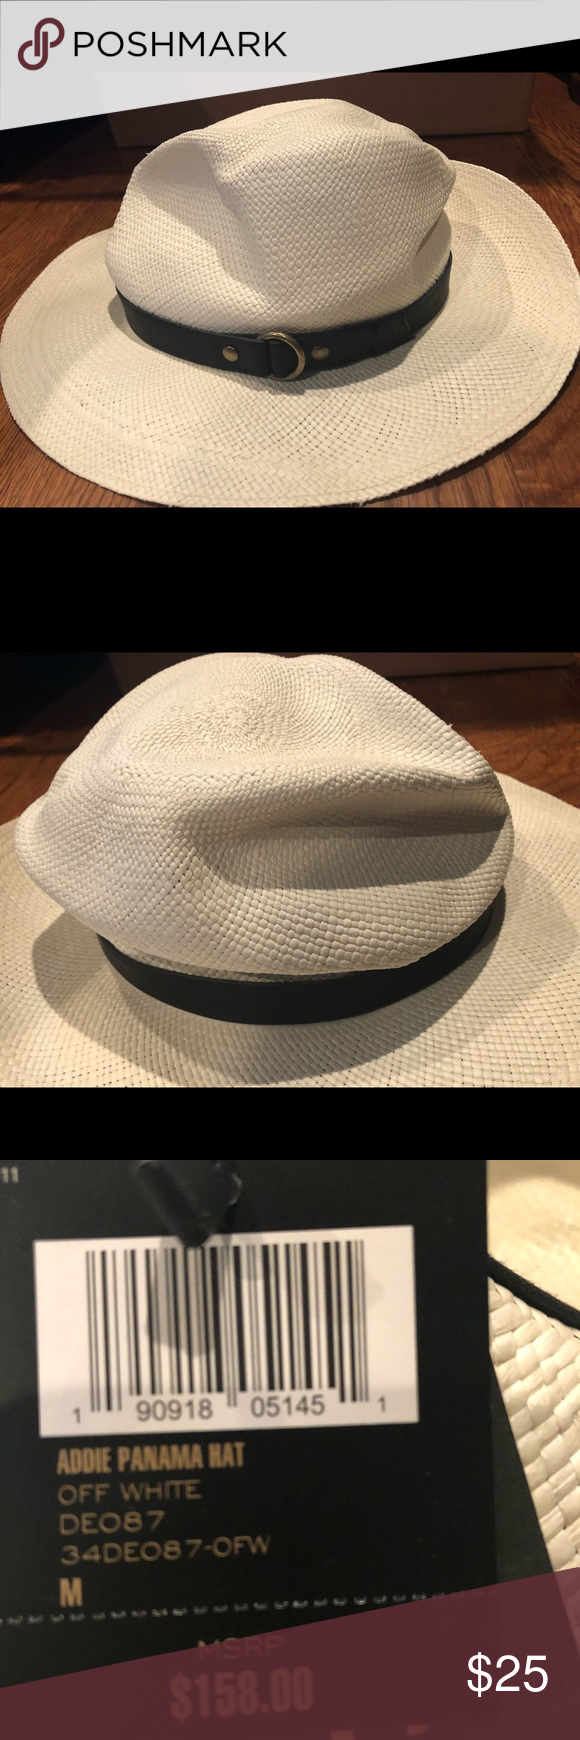 7651bee77f3d7 Frye women s Panama hat New New with defects Retail display so may have  slight imperfections See photos Frye Accessories Hats